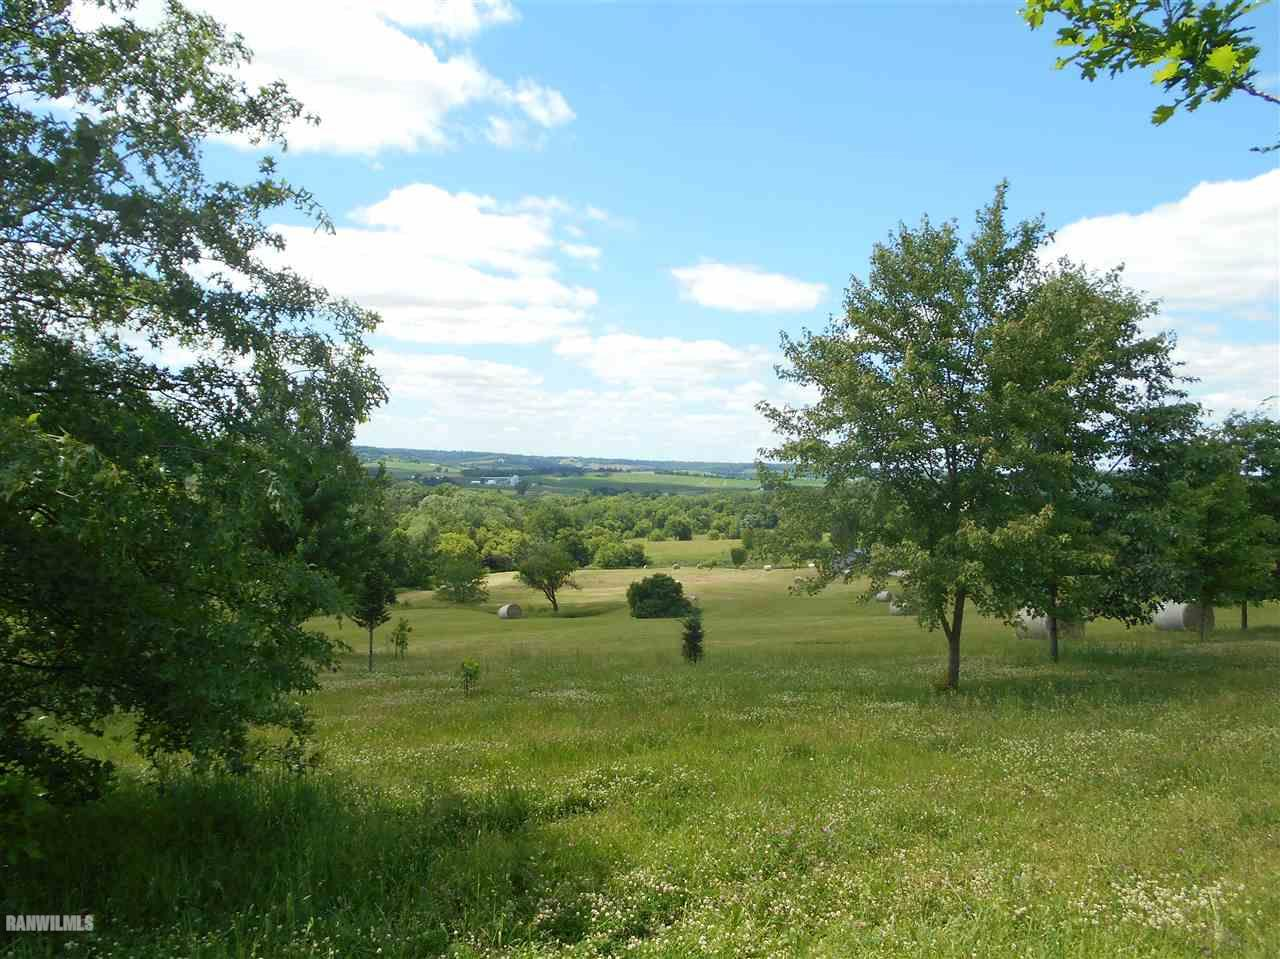 Image of Acreage for Sale near Elizabeth, Illinois, in Jo Daviess County: 25 acres